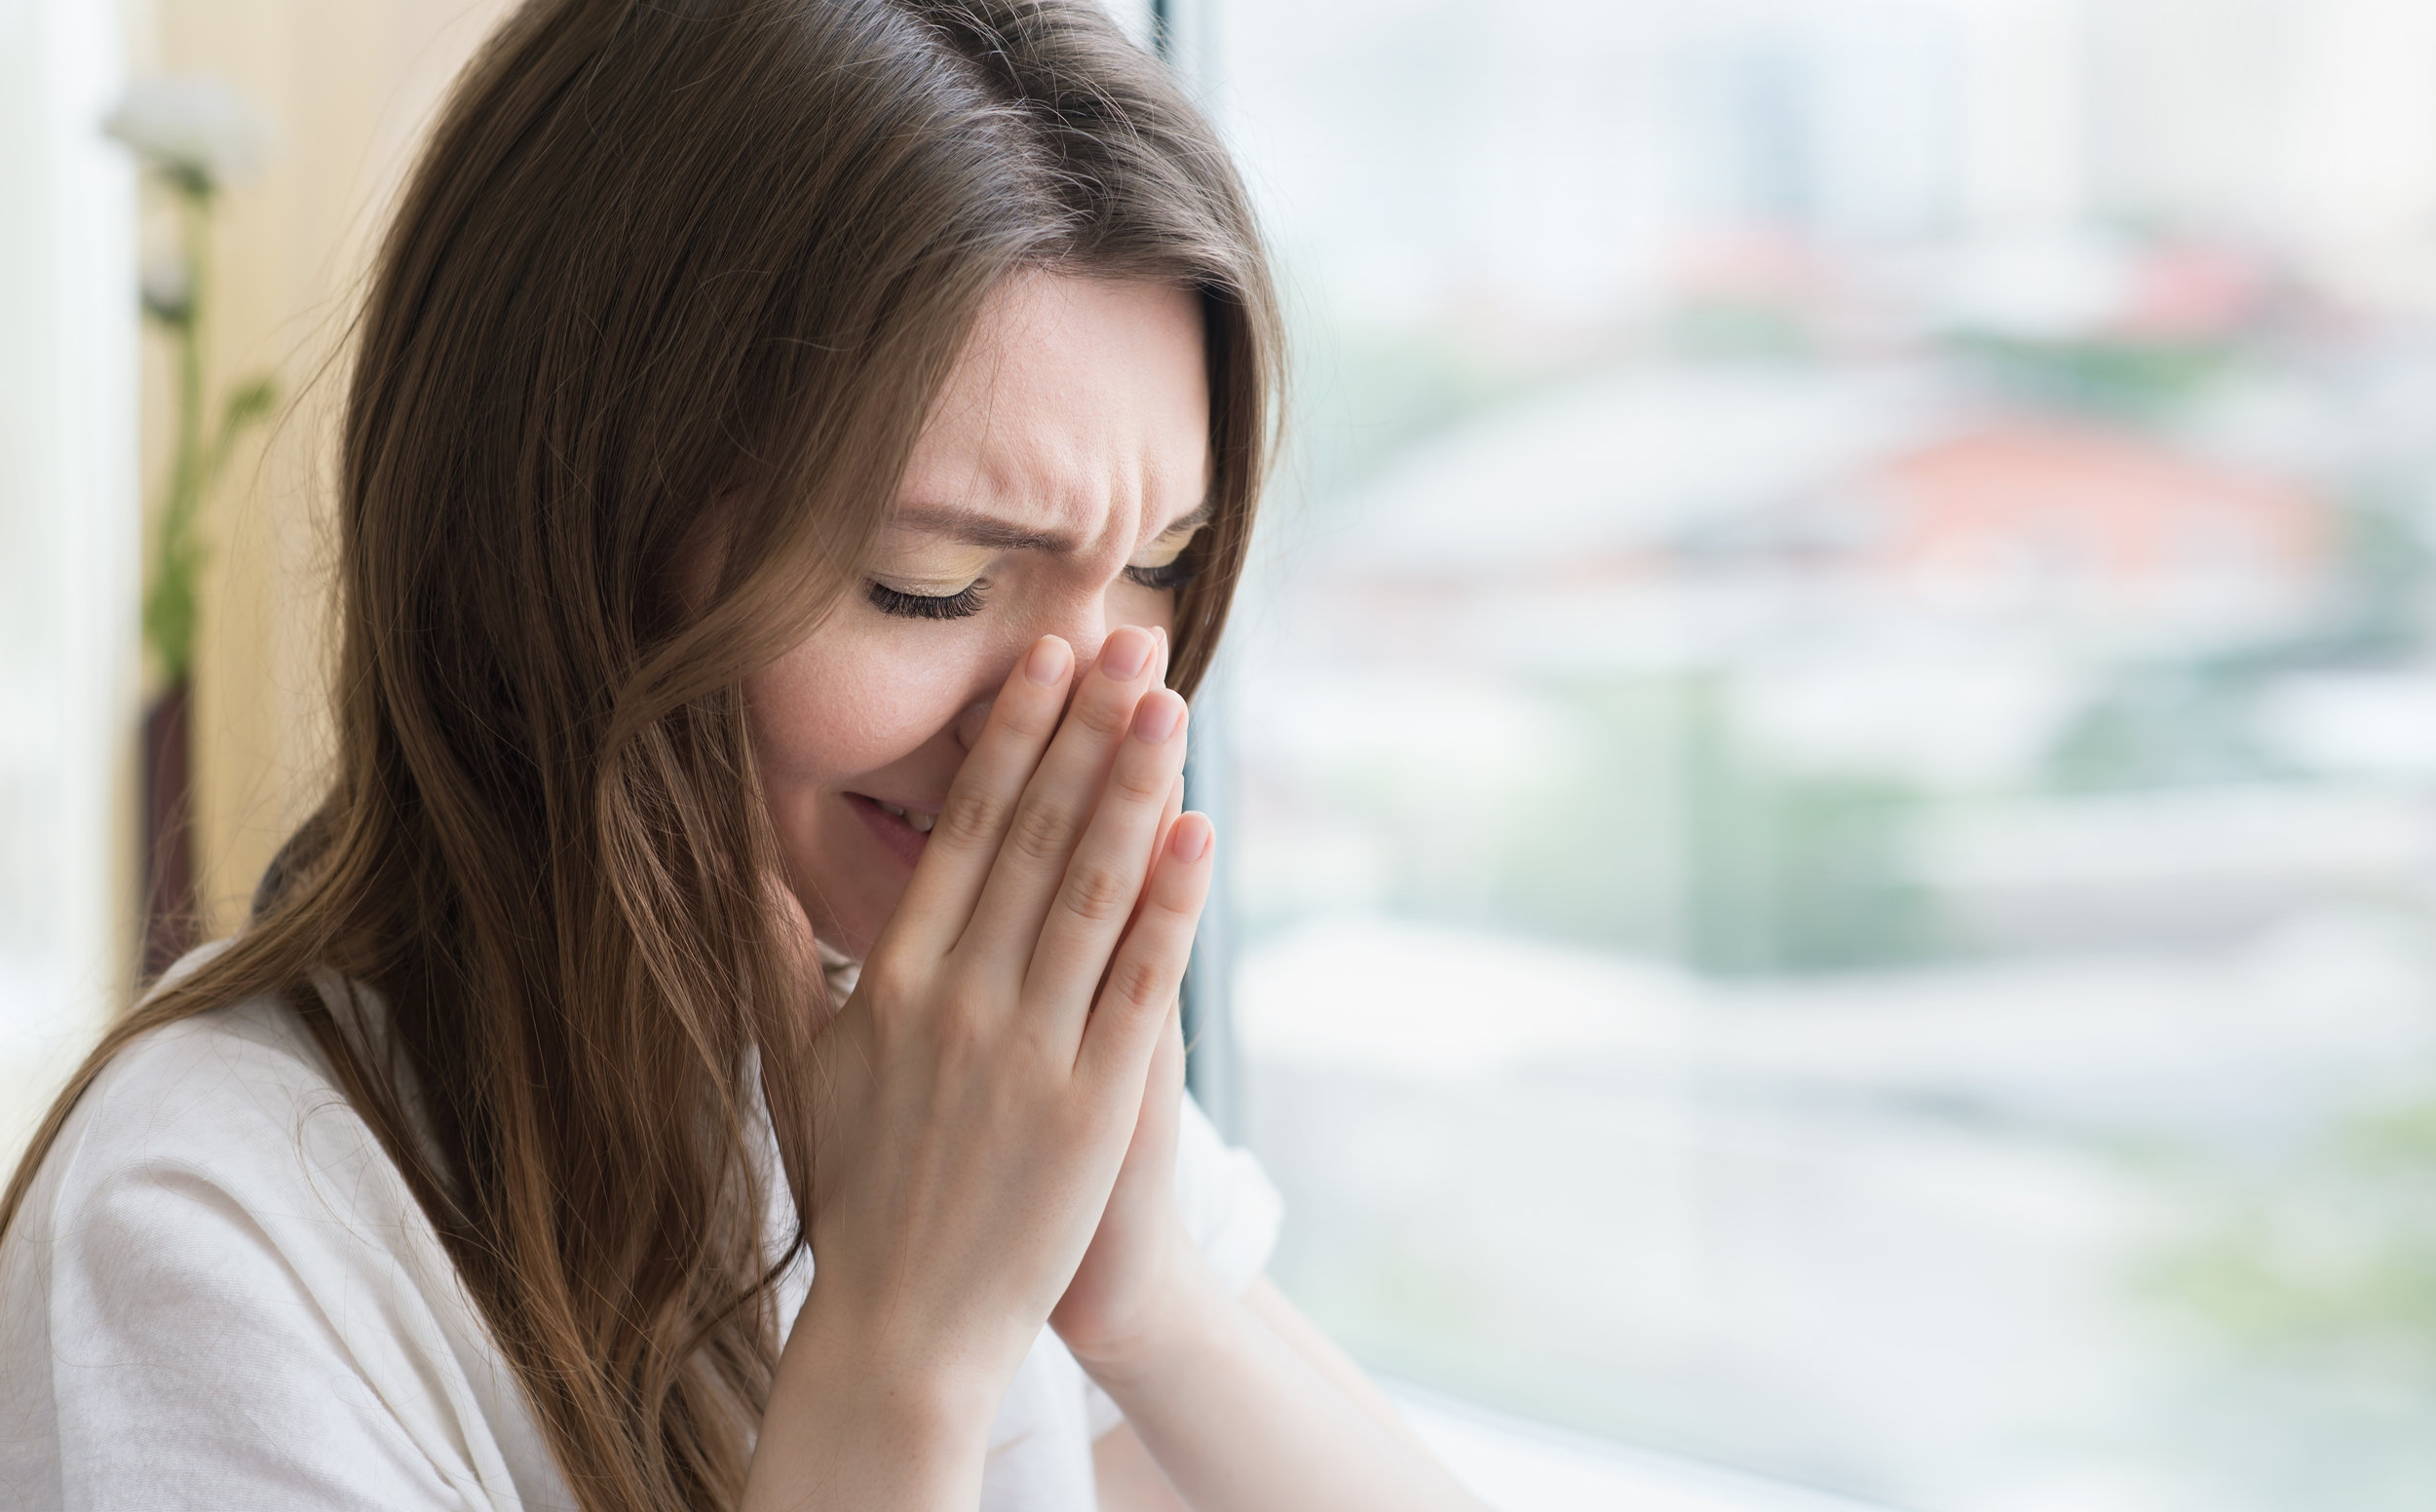 Nasal Congestion - Chronic nasal congestion can get in the way of every day living. Book an appointment today to see what may be causing your discomfort.